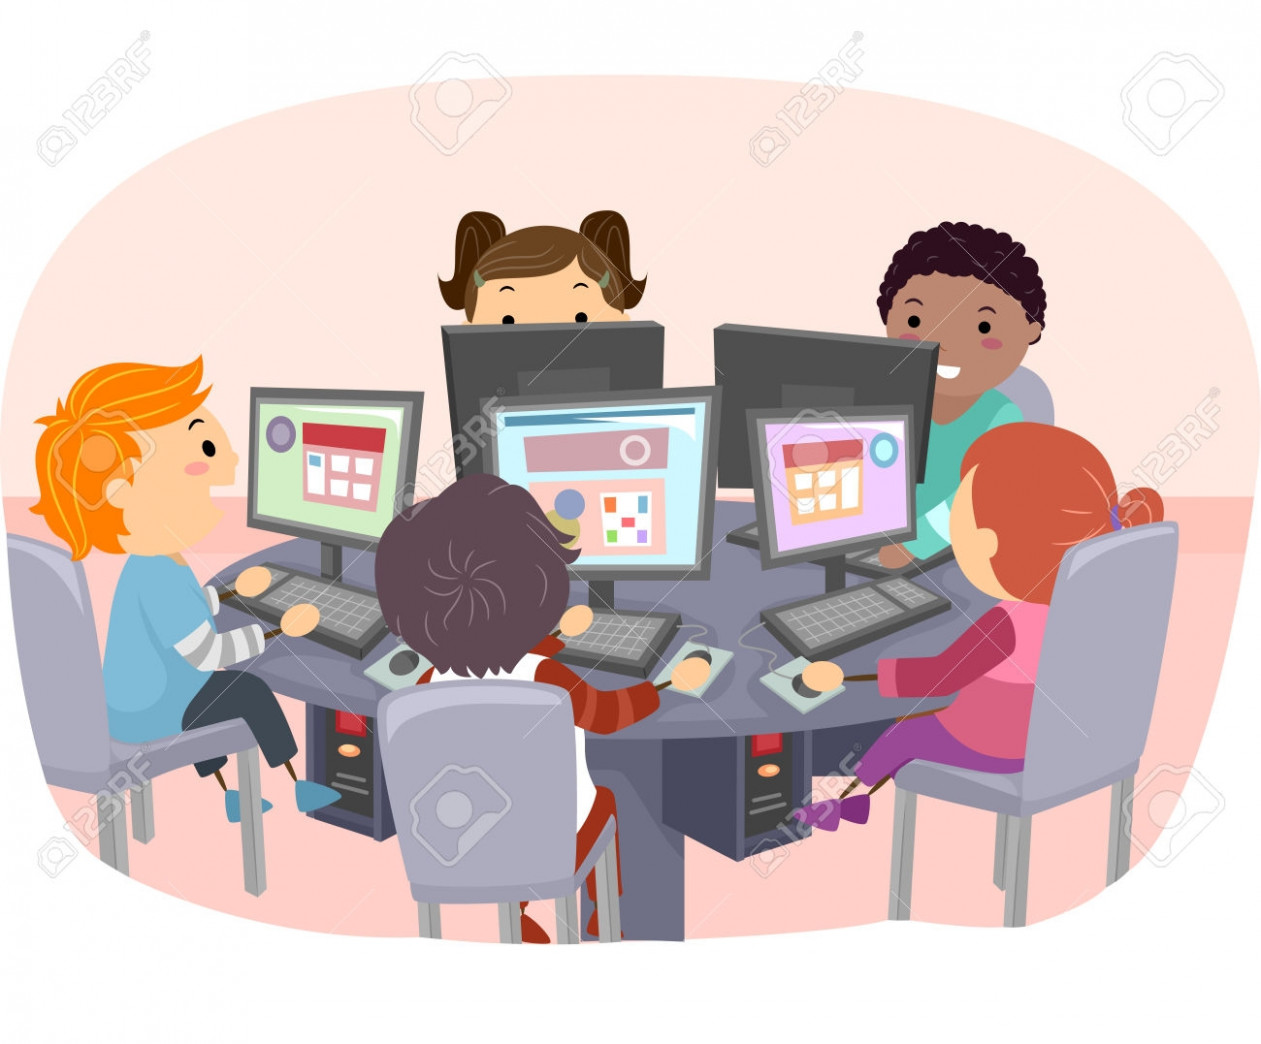 Computer laboratory clipart 7 » Clipart Station.